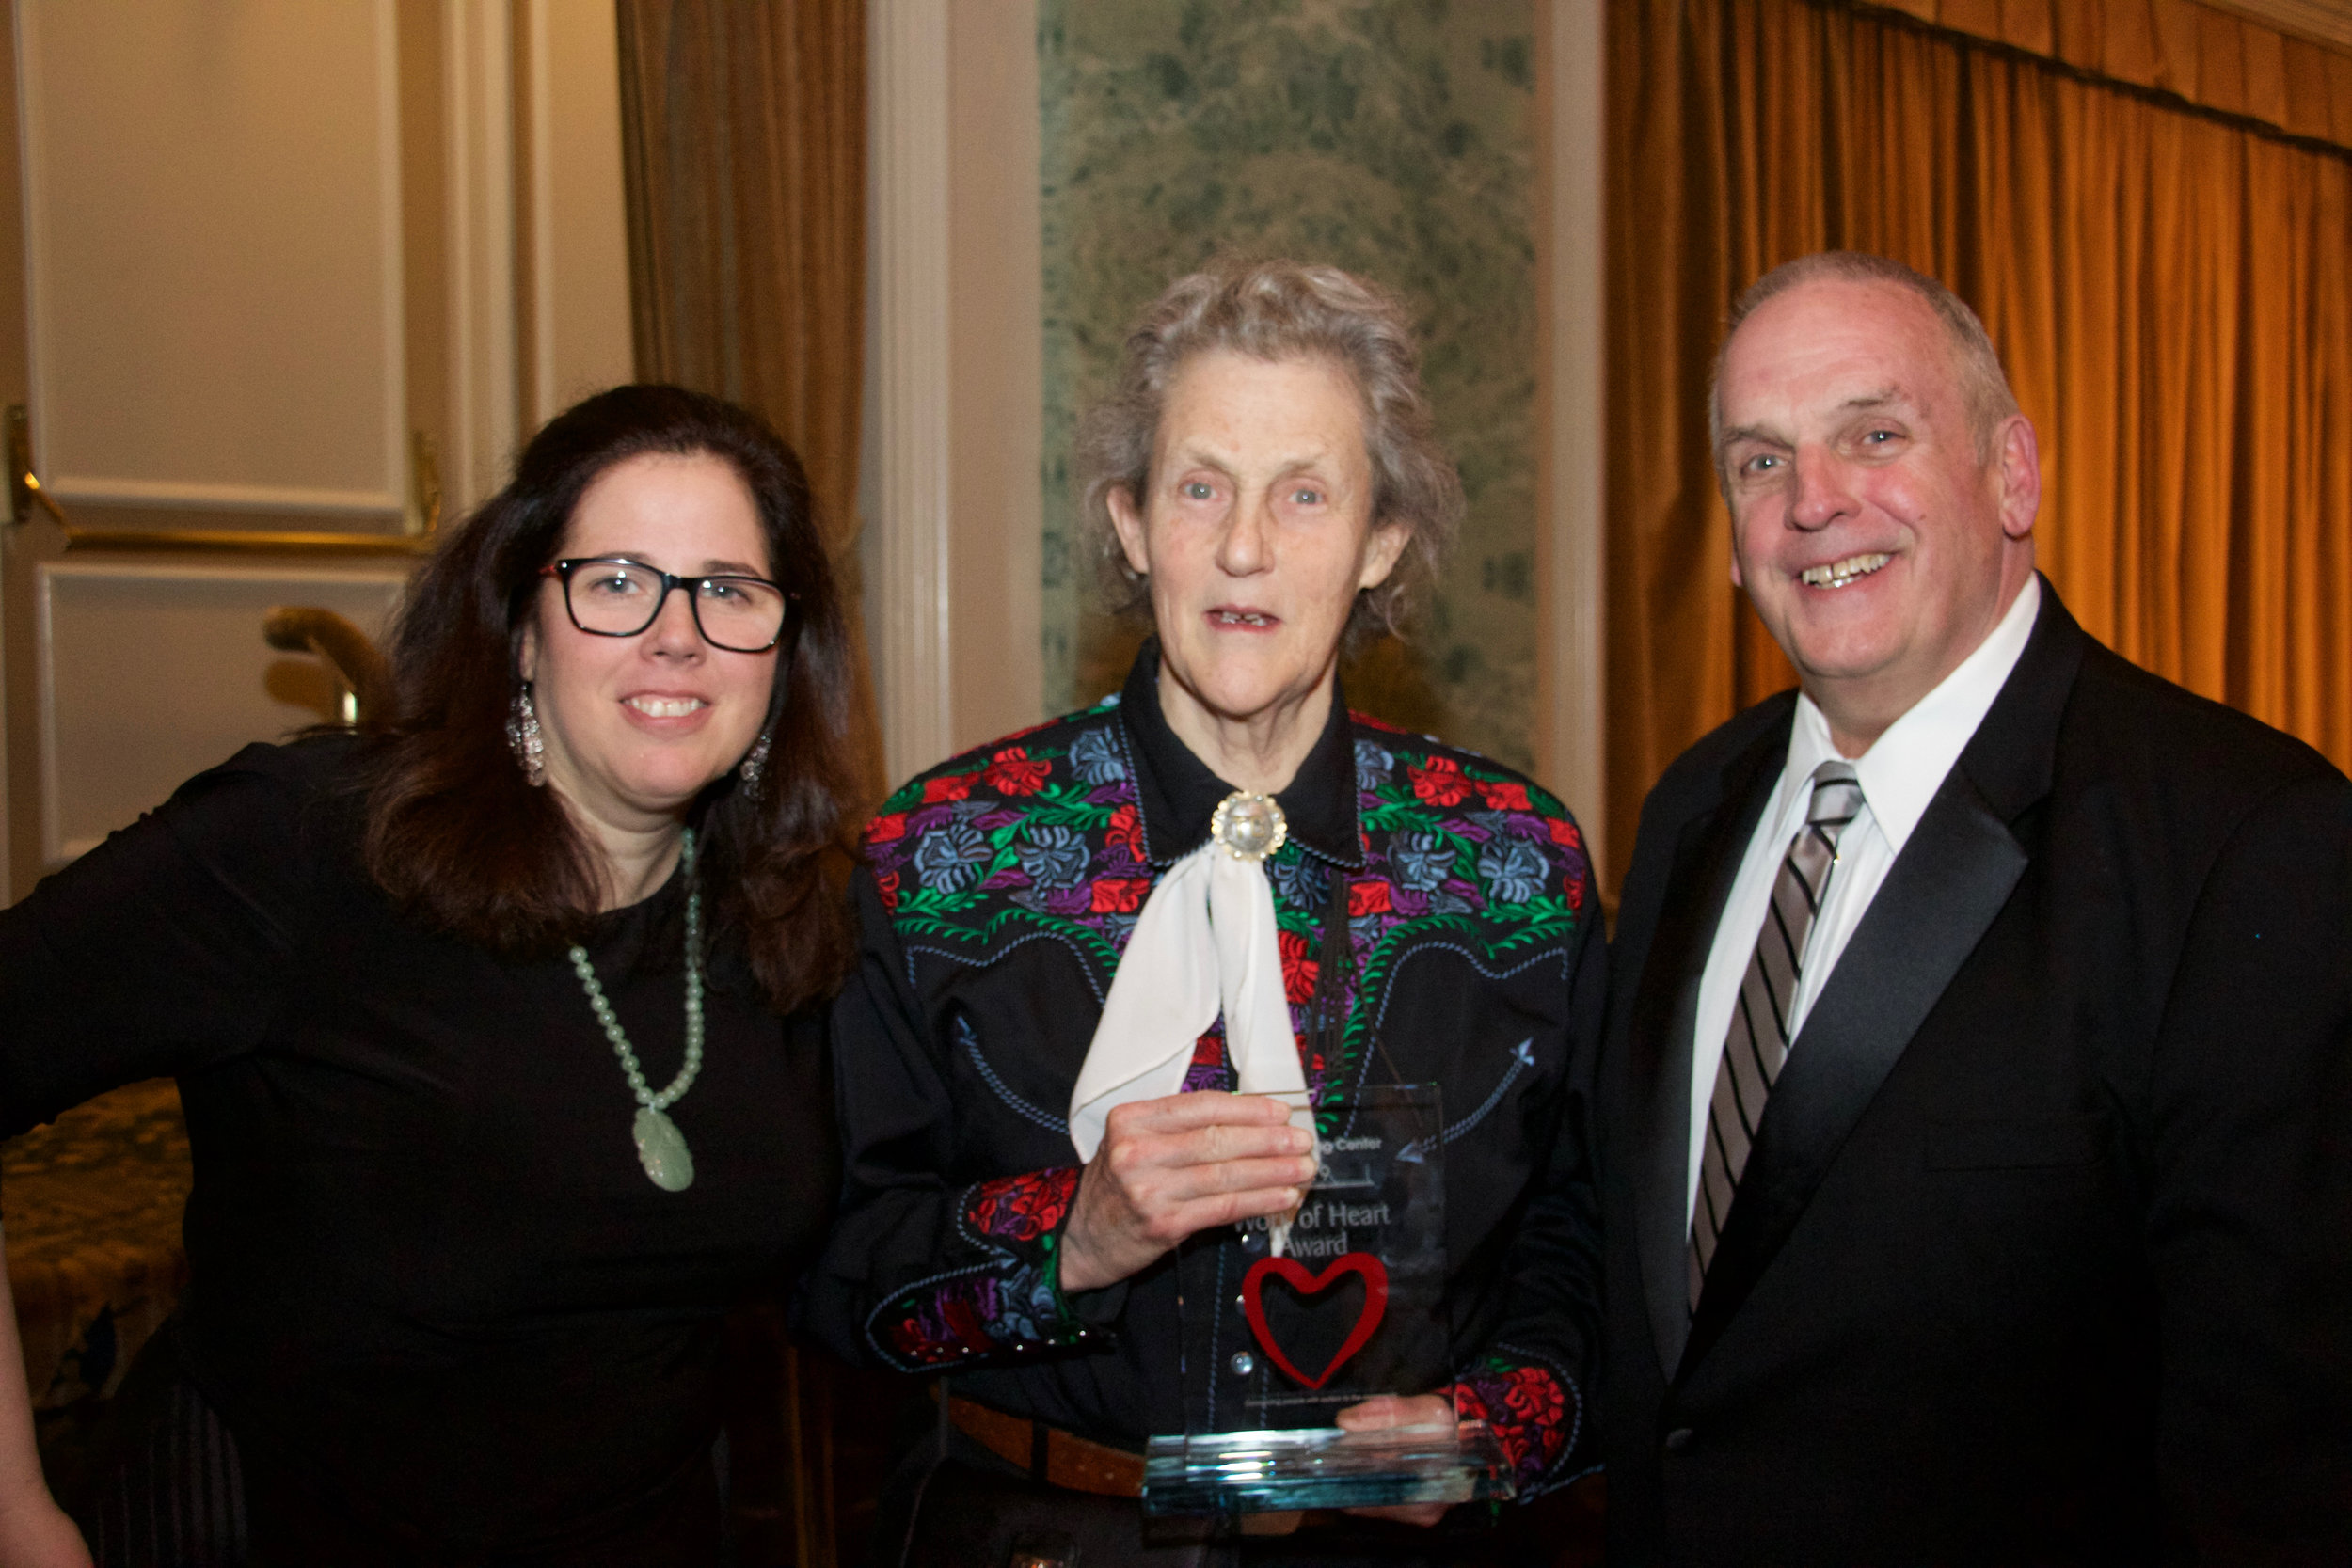 (from left) PACTT Executive Director, Dr. Kristen Huffman-Gottschling; Work of Heart honoree Dr. Temple Grandin; PACTT Development Director, Terry Herbstritt